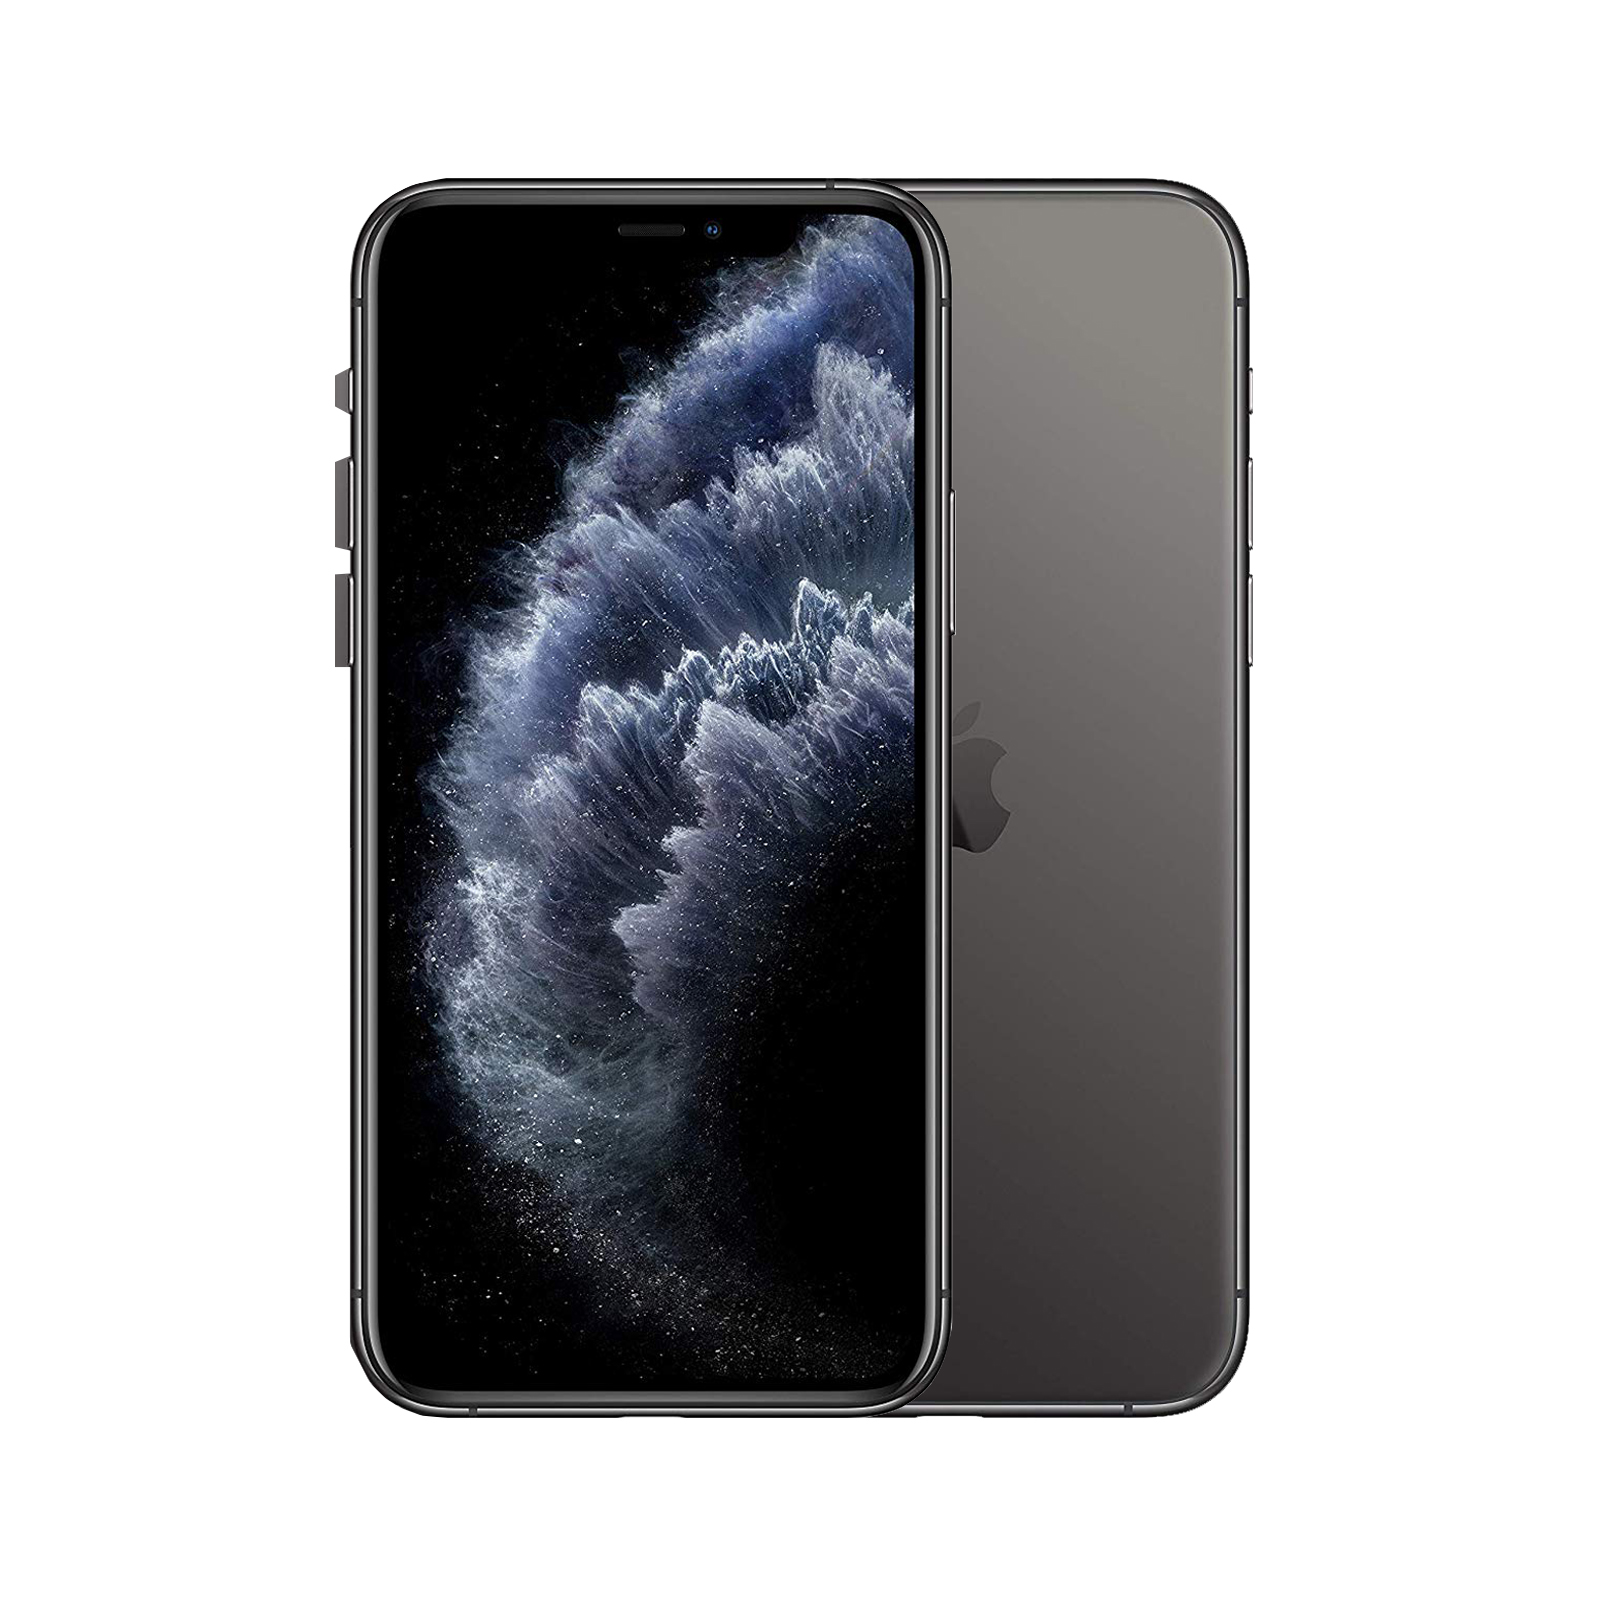 Apple iPhone 11 Pro Max [512GB] [Space Gray] [As New] [12M]